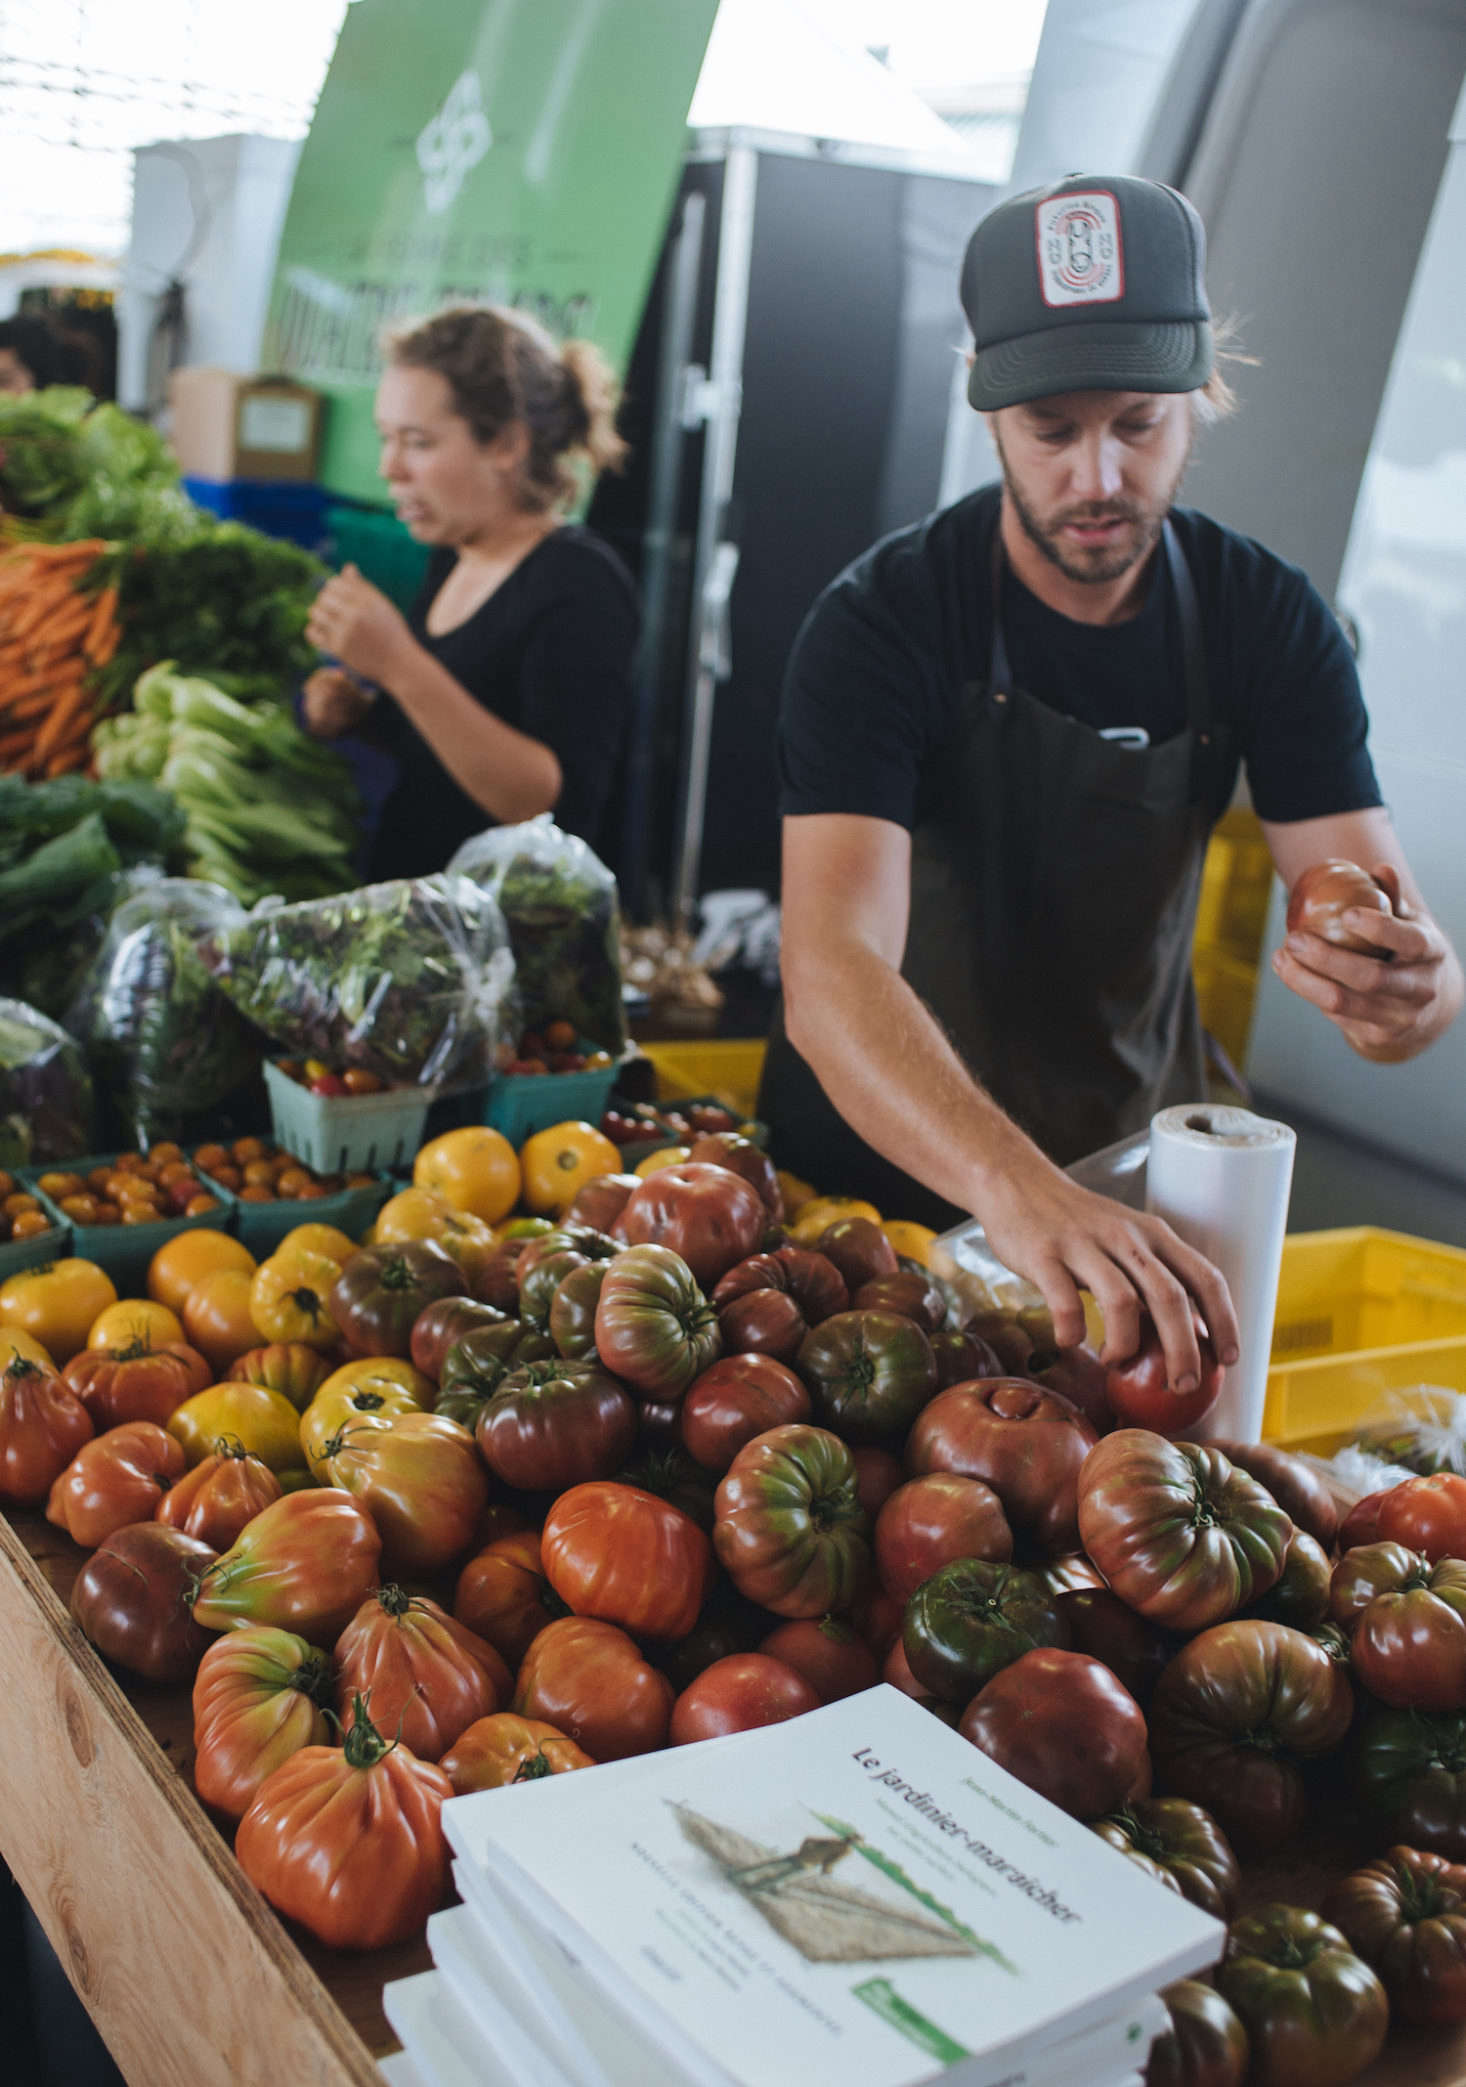 Fortier sells heirloom tomatoes at the market stand.